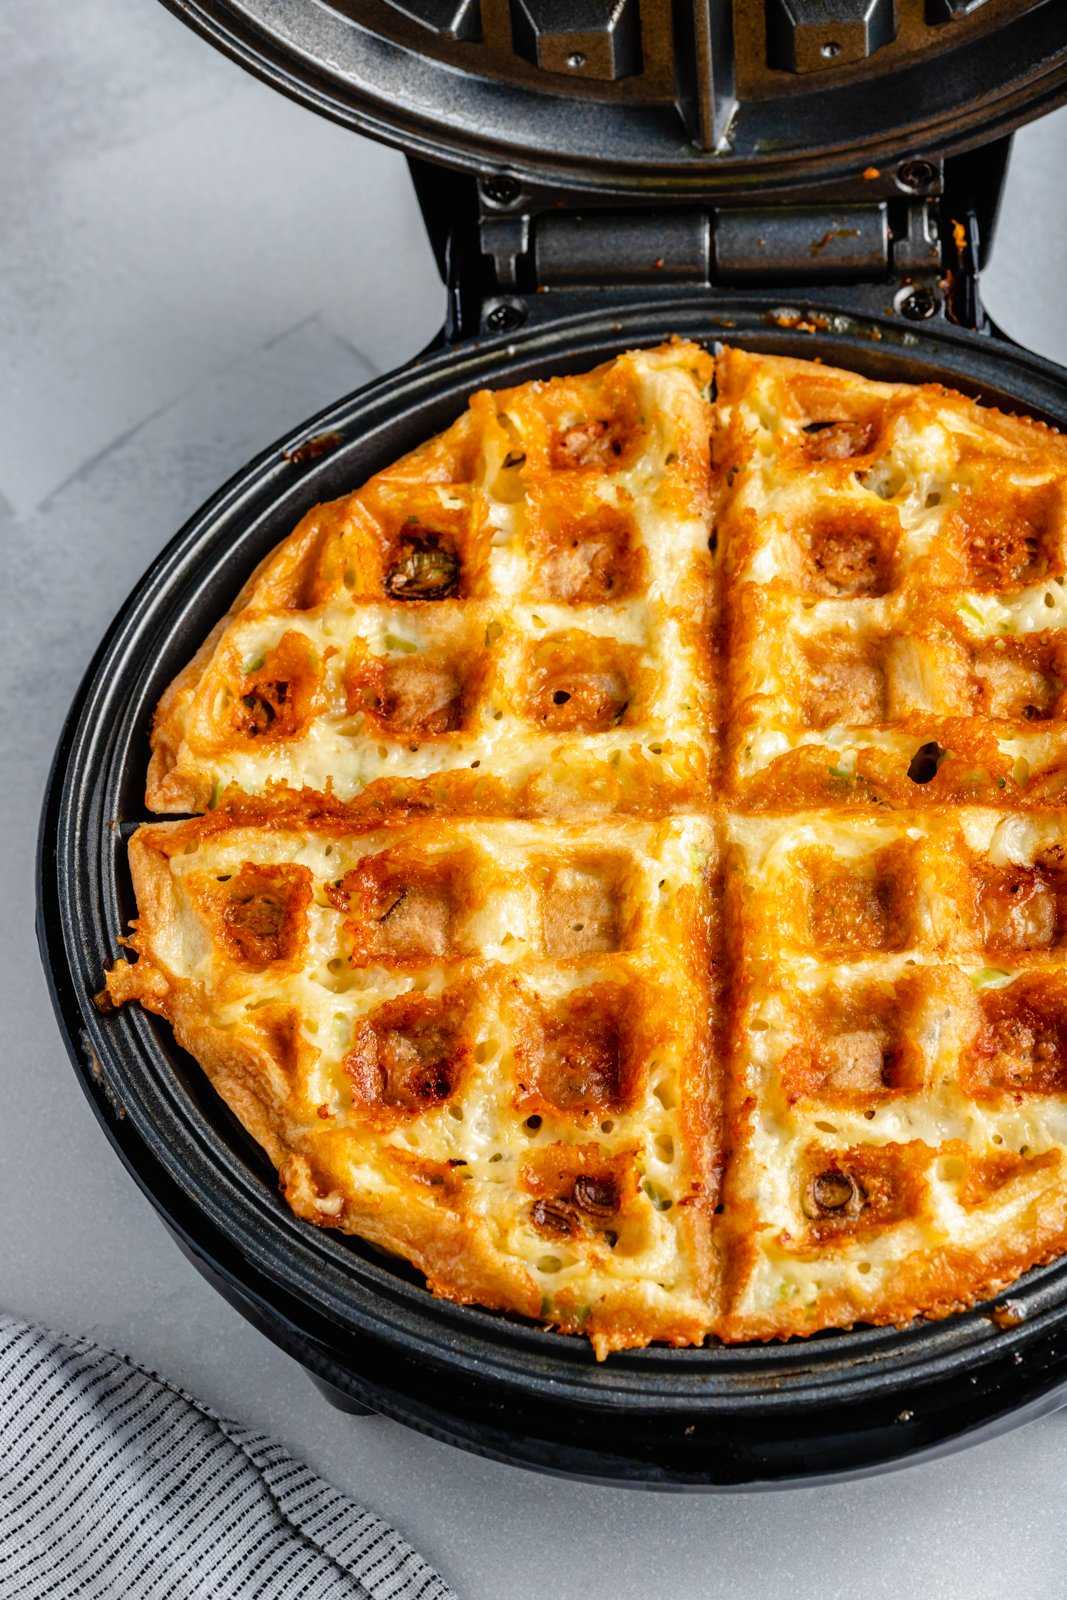 egg and cheese waffles in a waffle iron